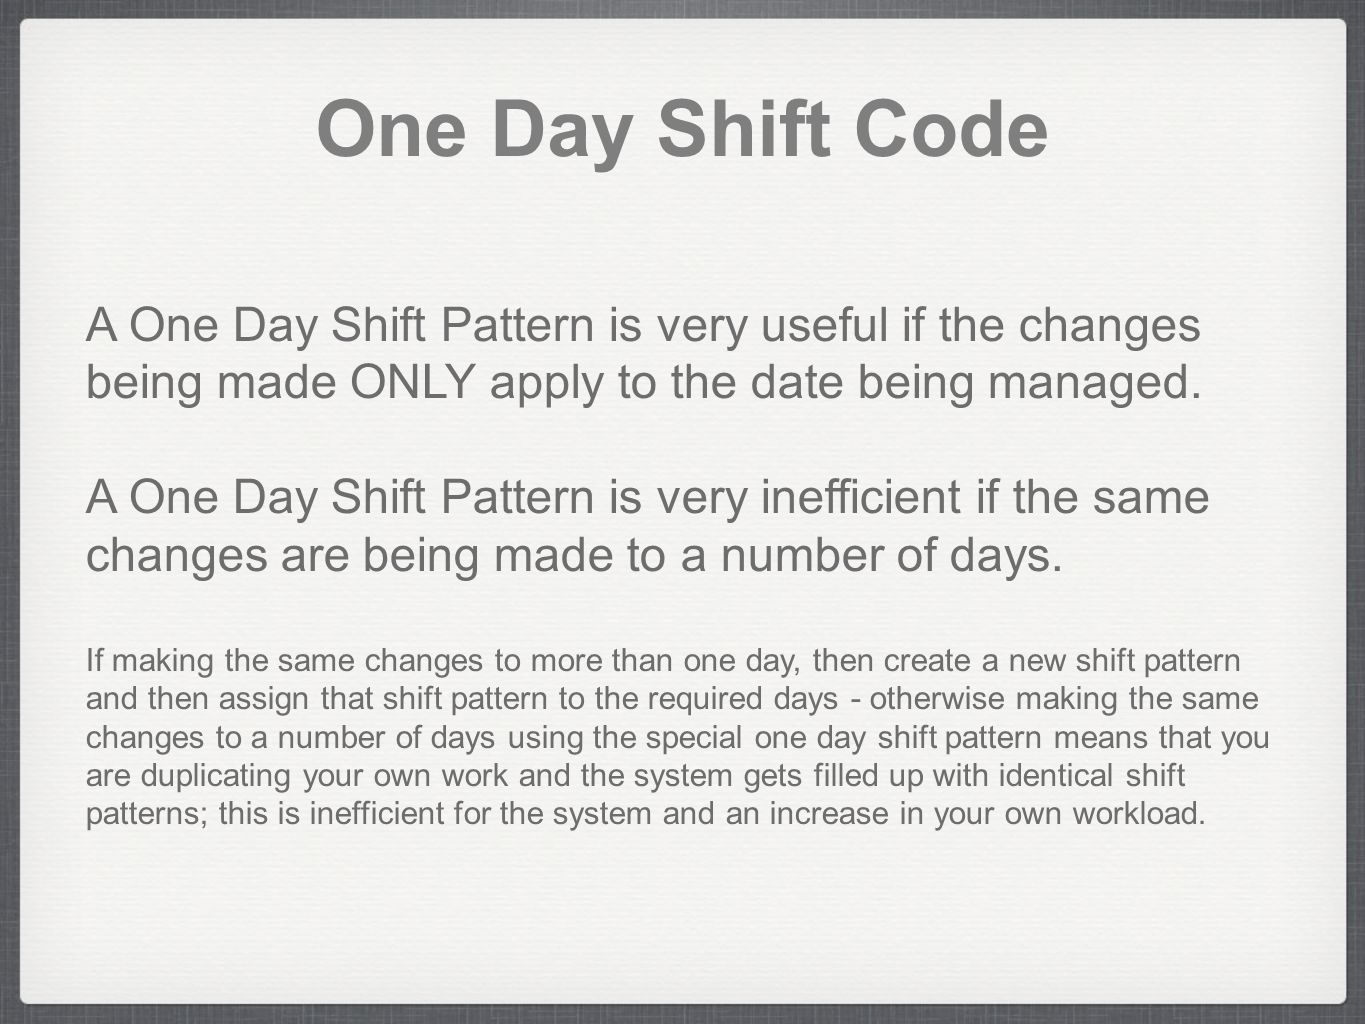 One Day Shift Code A One Day Shift Pattern is very useful if the changes being made ONLY apply to the date being managed. A One Day Shift Pattern is v